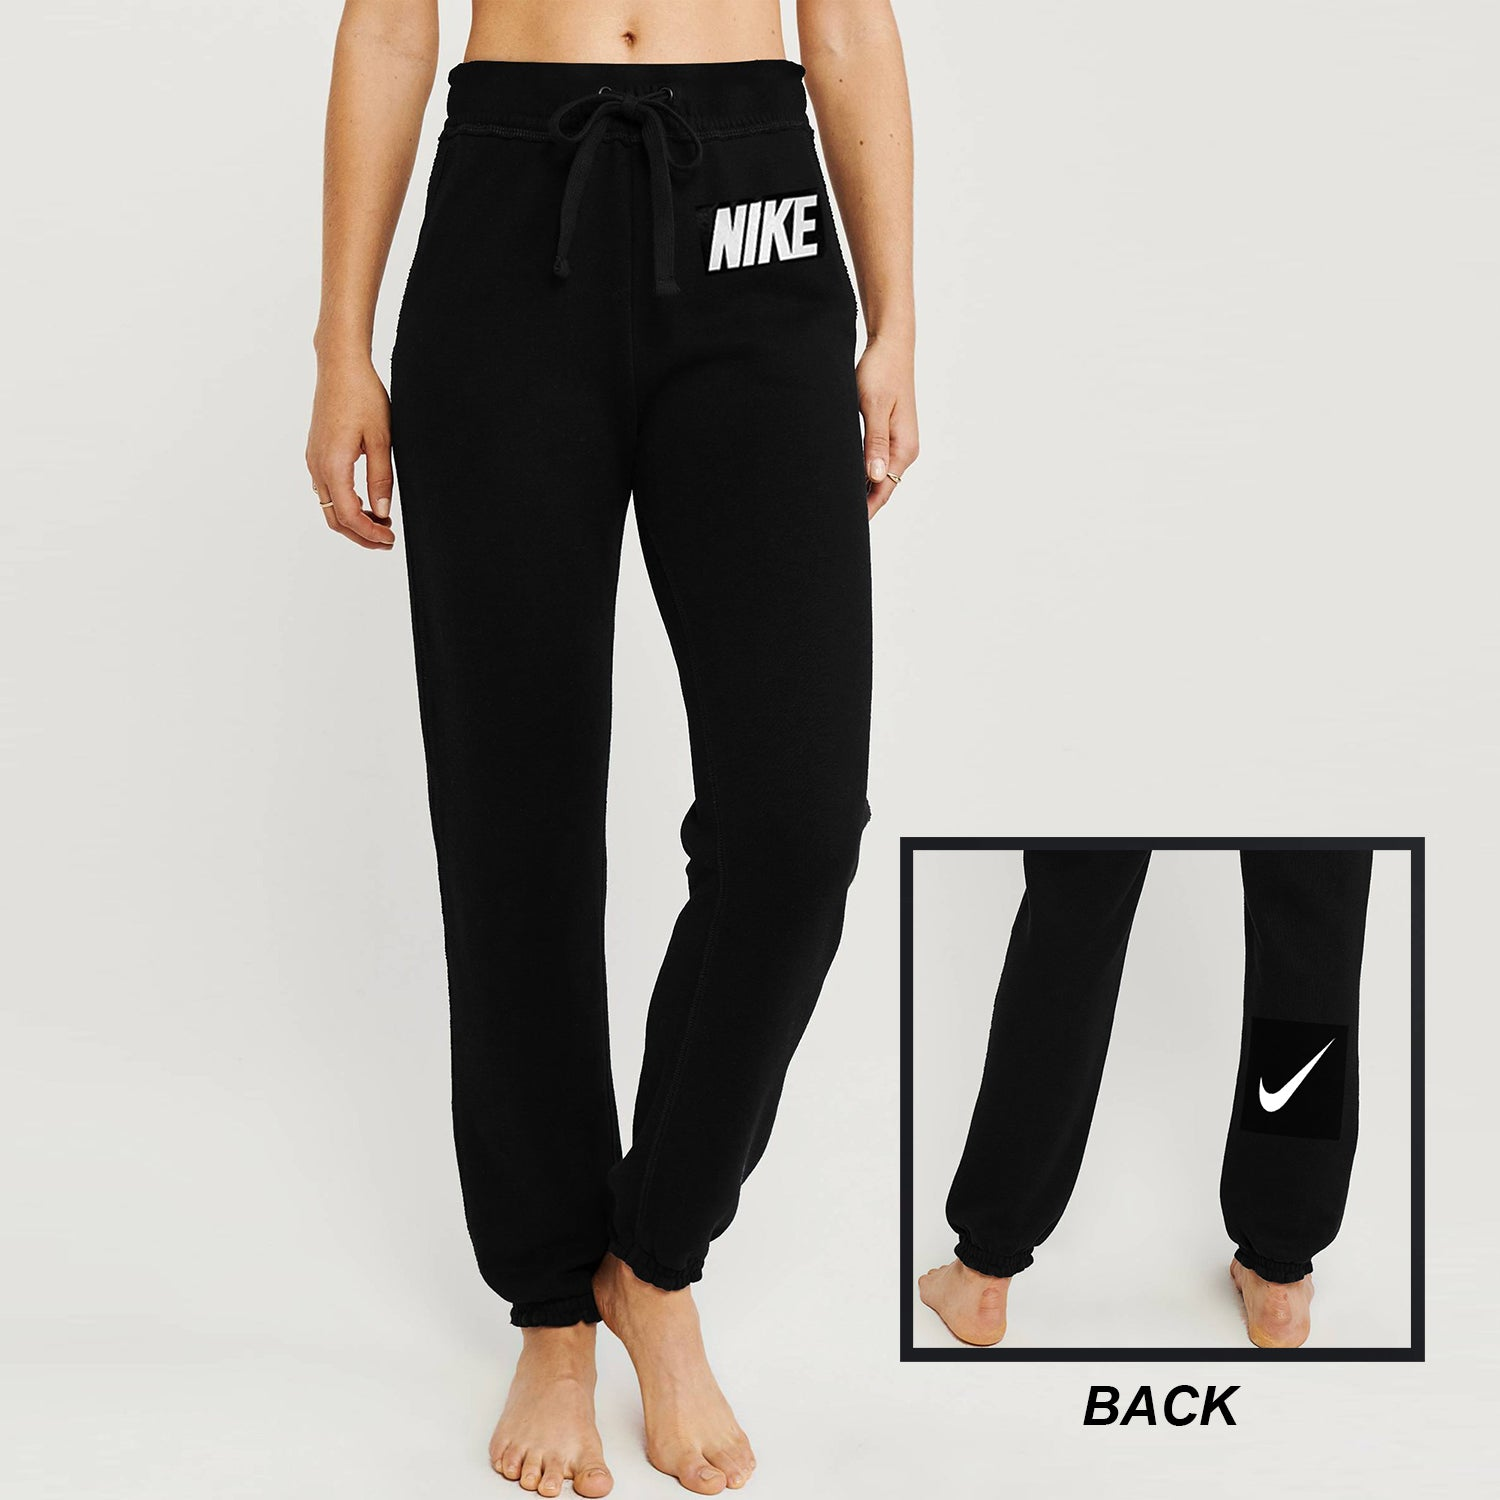 NK Fleece Slim Fit Trouser For Ladies-Black-BE10860